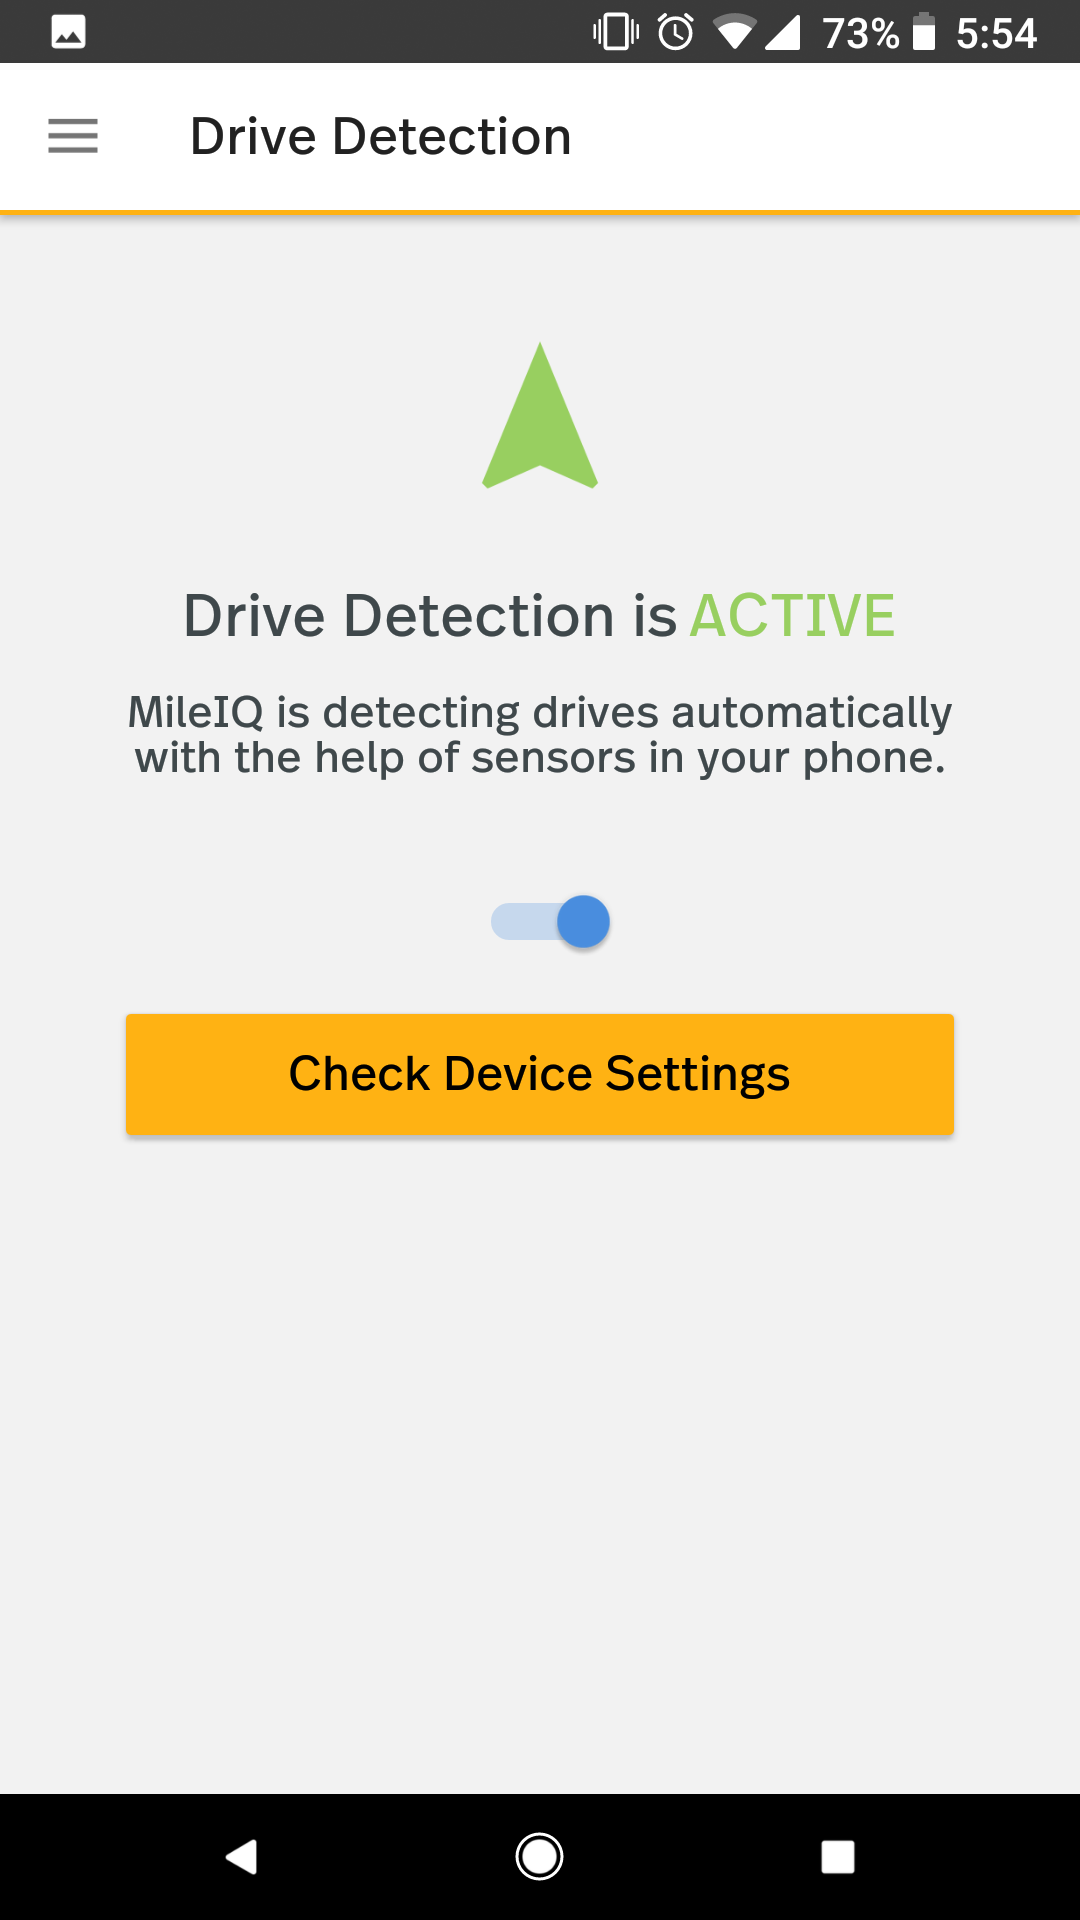 This shows where to access the utility within the drive detection menu within the mobile app's settings